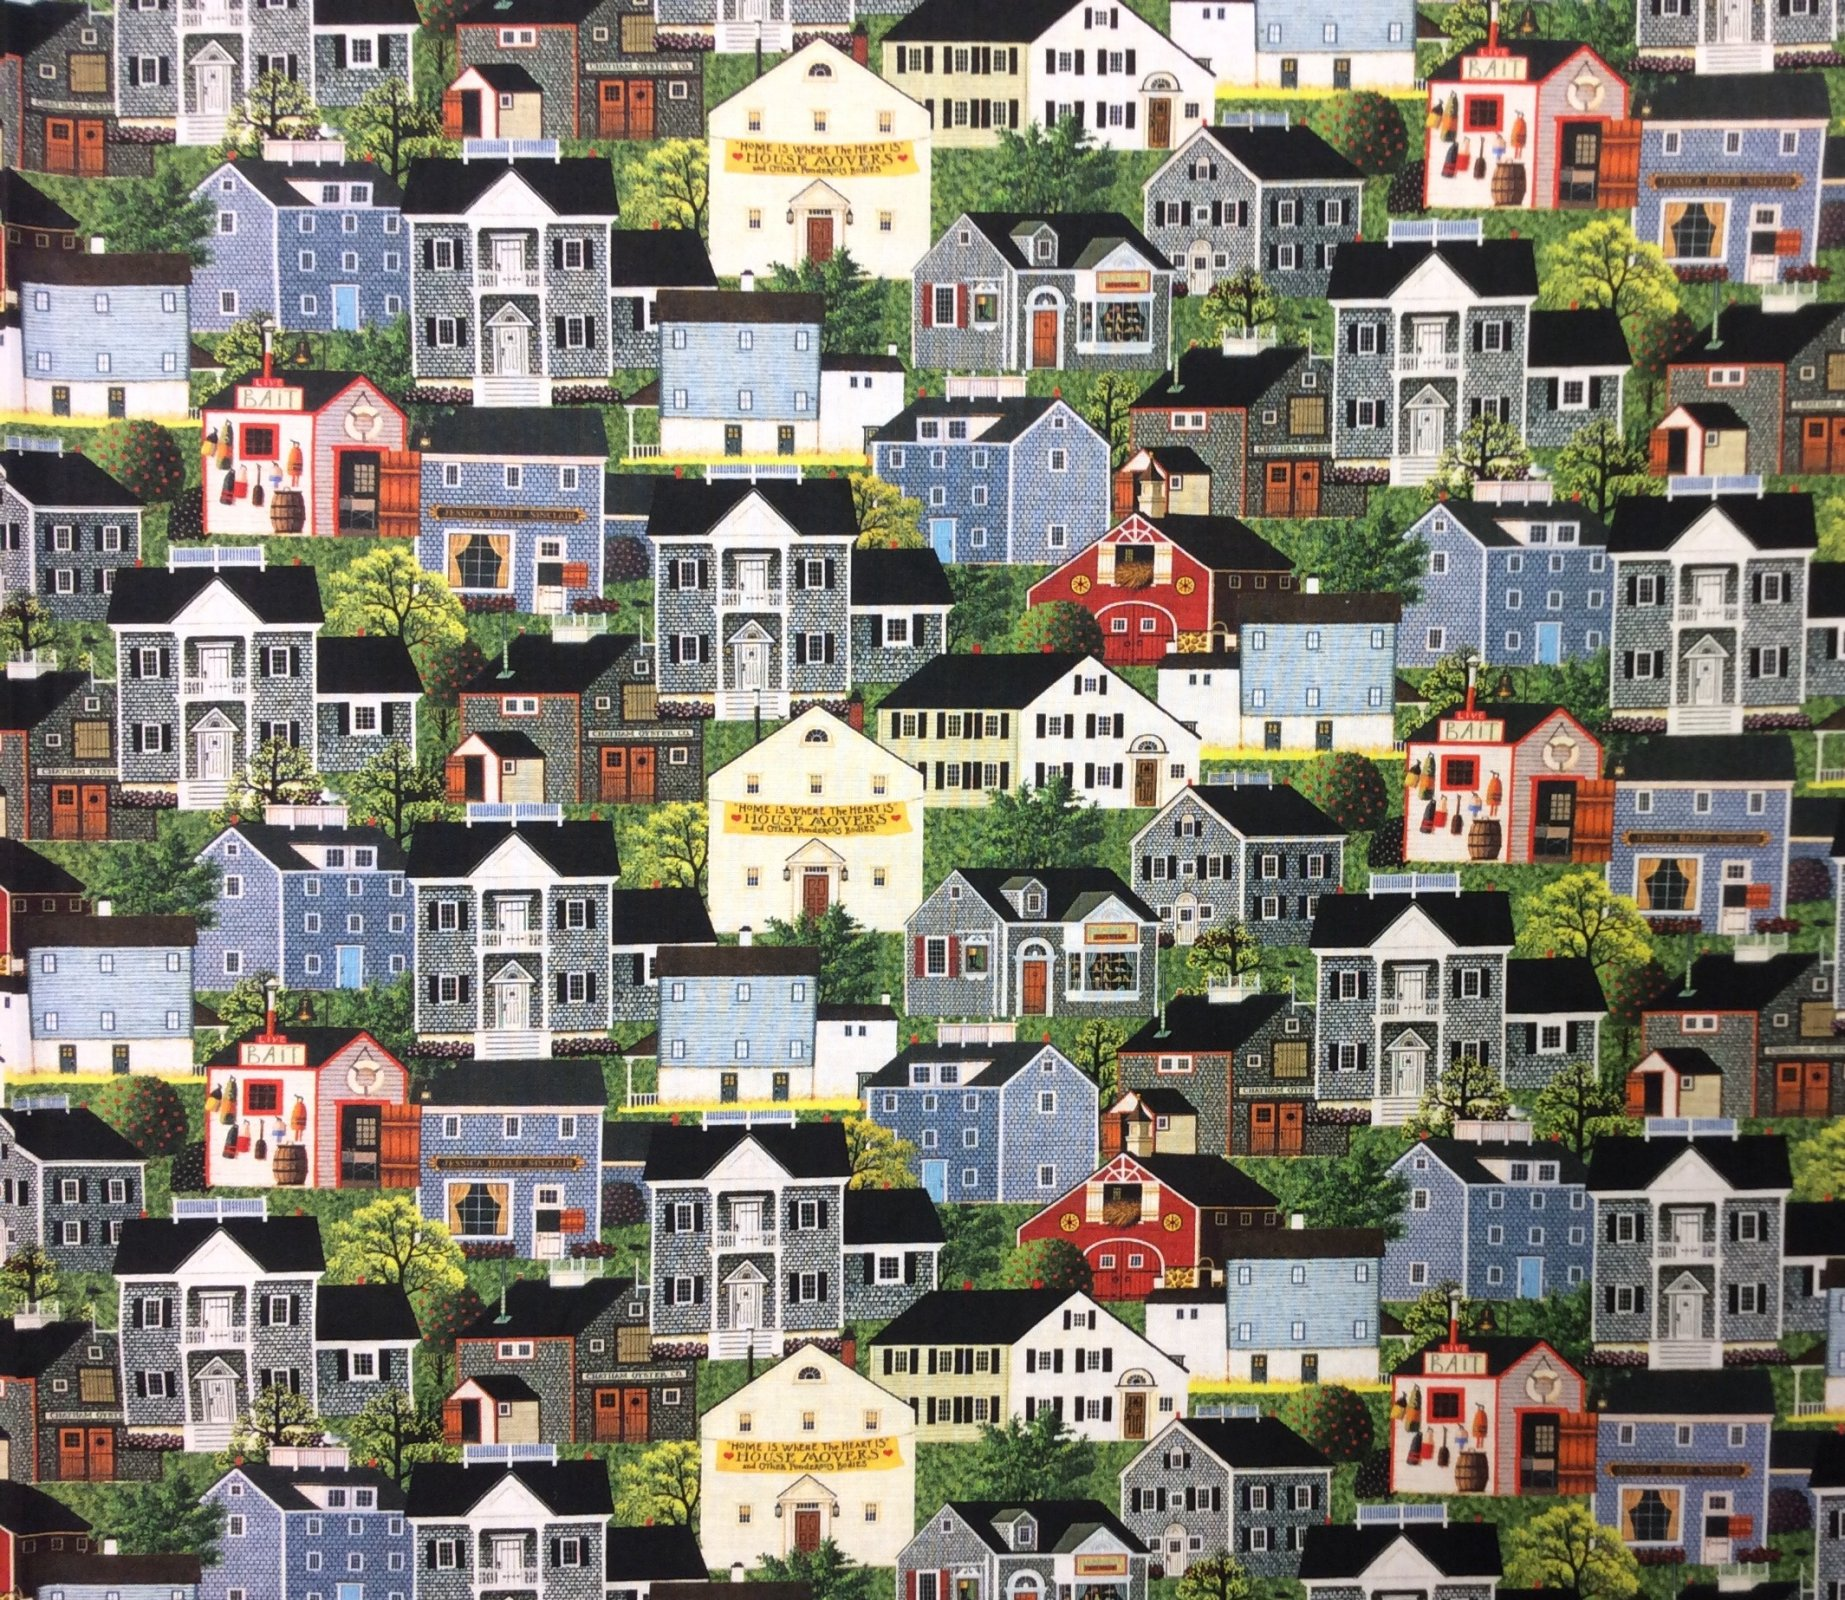 Charles Wysocki American Folk Art Town and Country House Village Cotton Quilt Fabric NC21